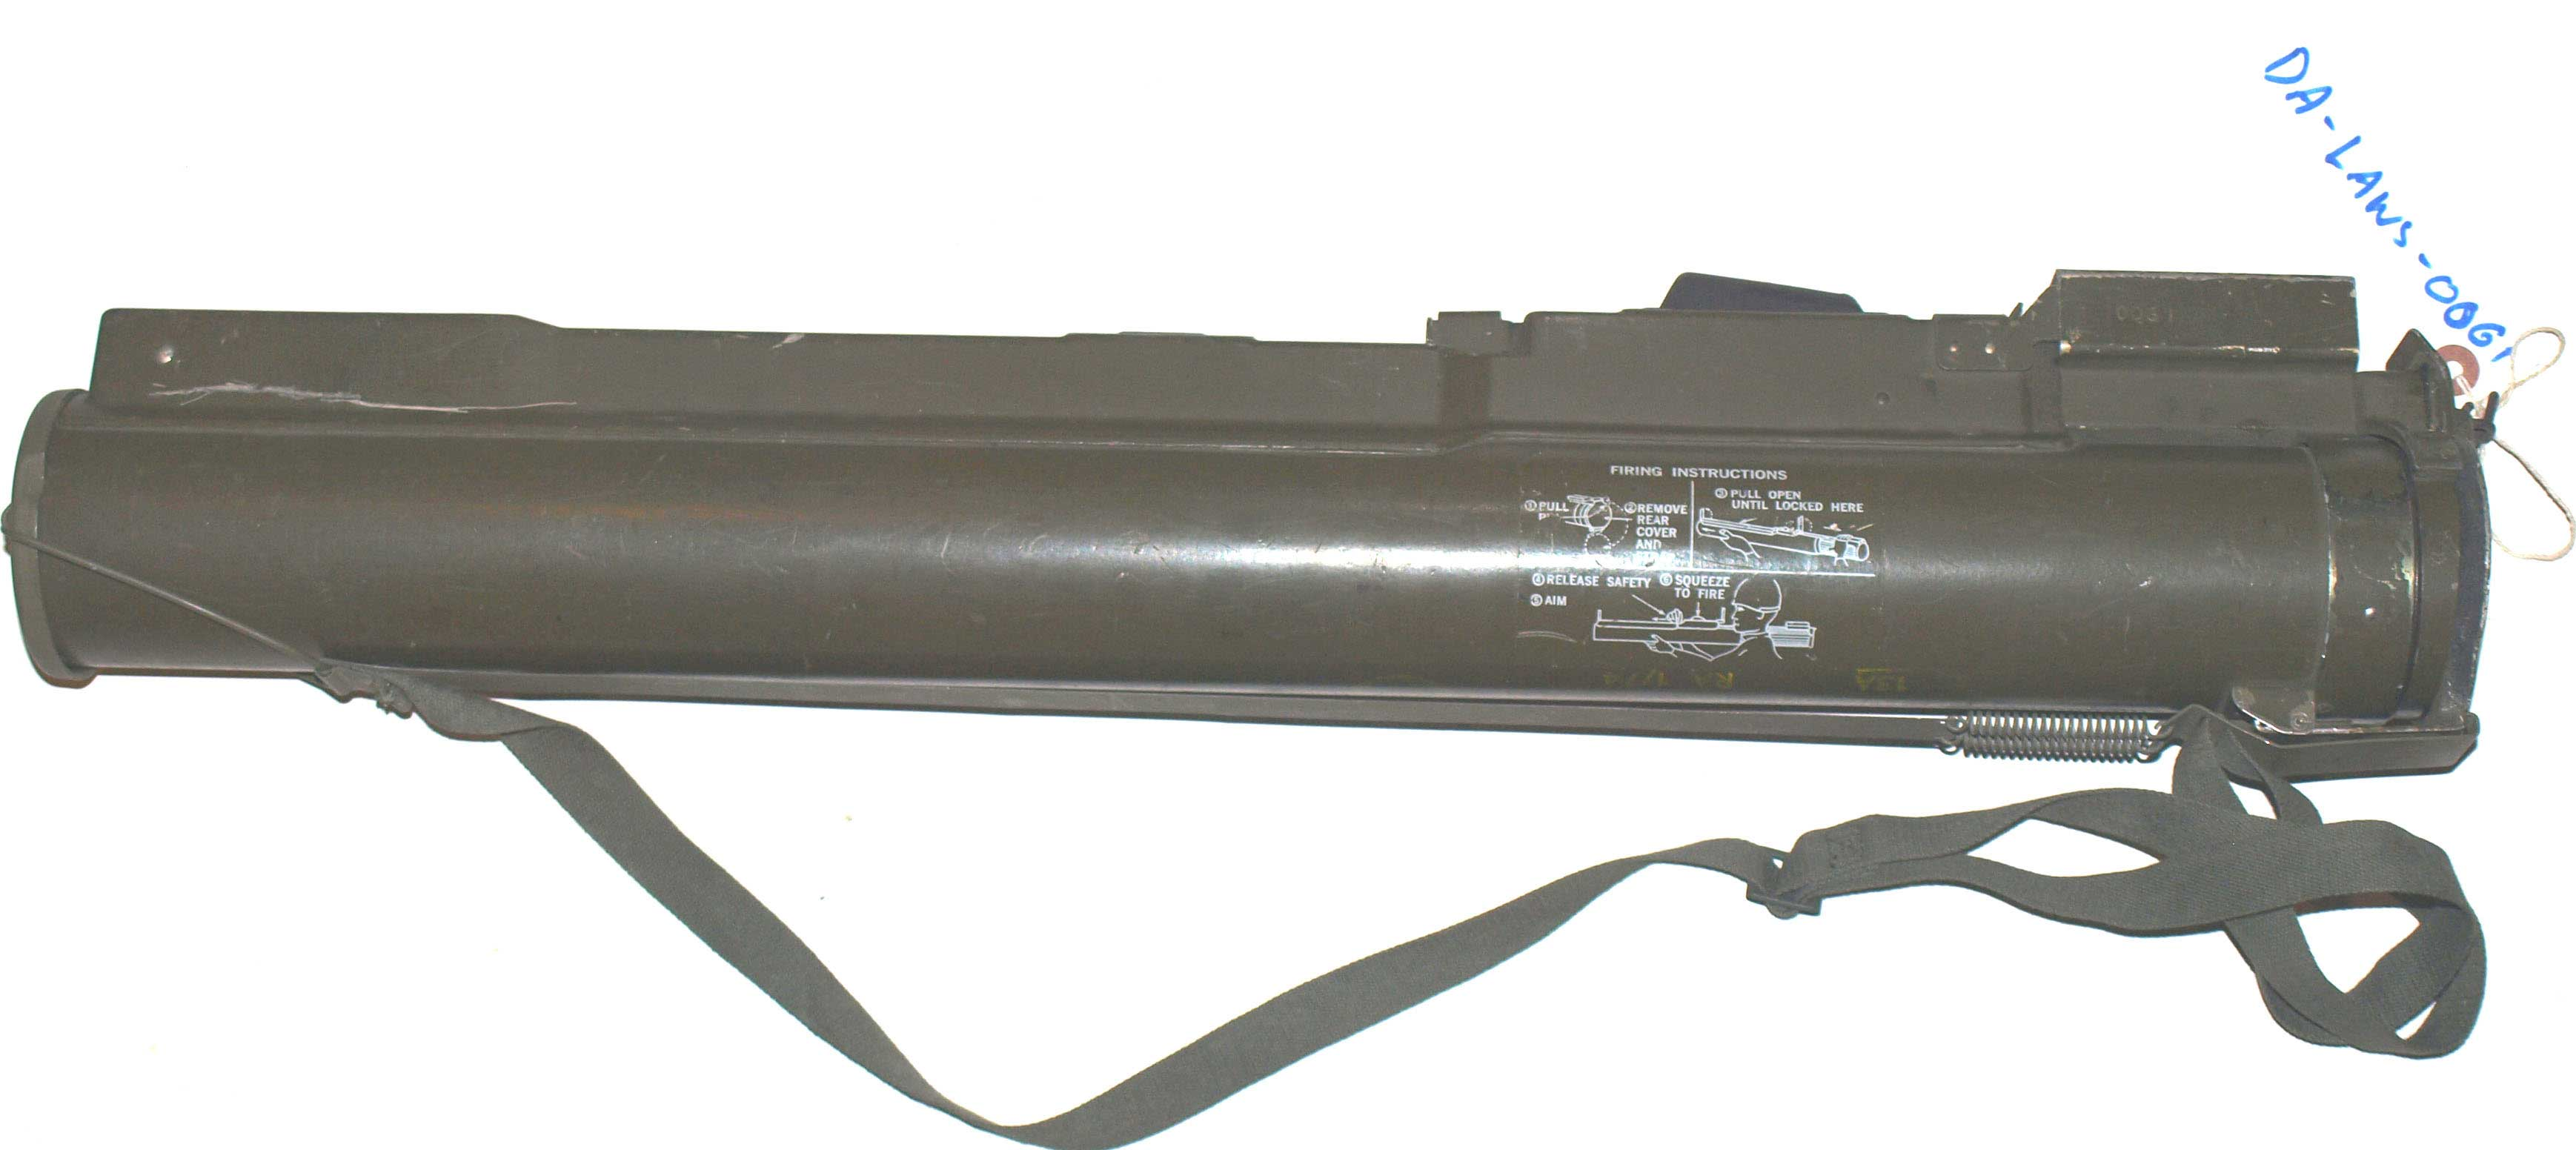 M72 LAWS 66mm Rocket Launcher (DA-LAWS-0061)